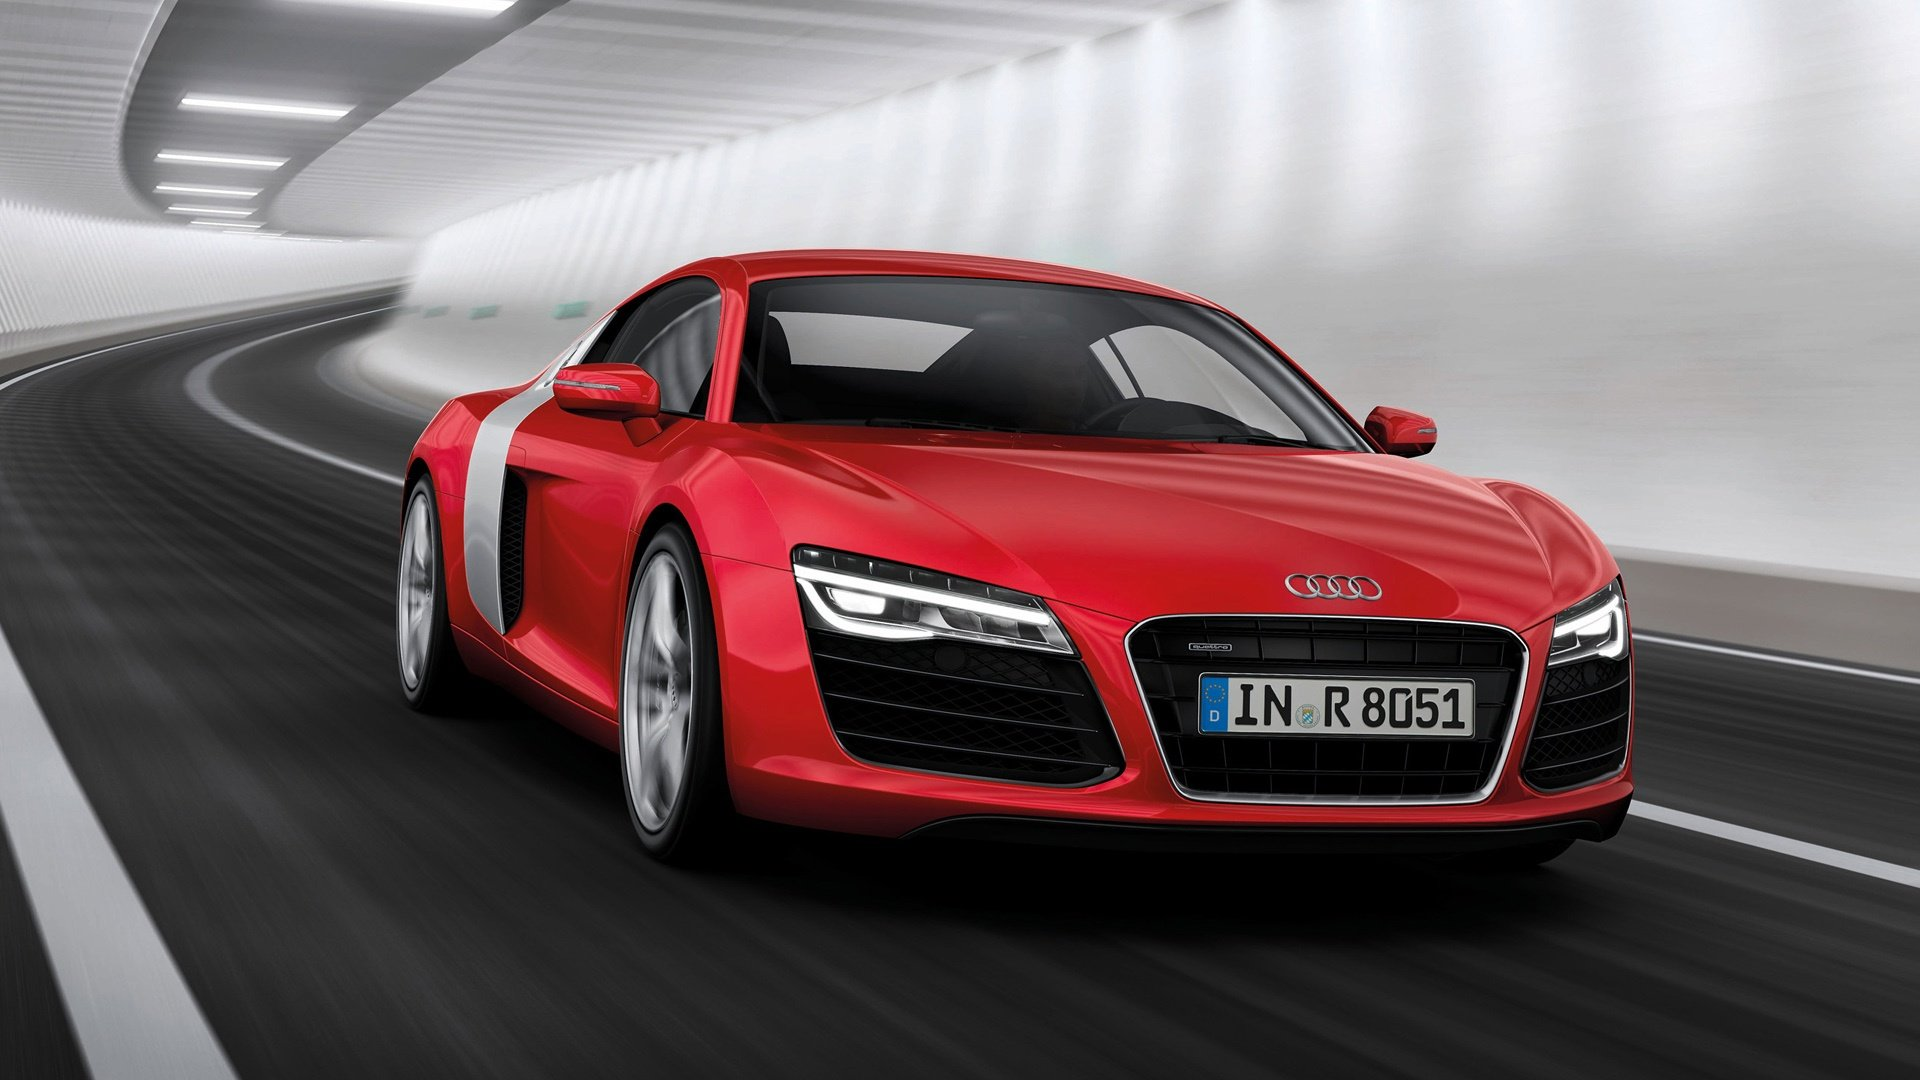 download 2013 audi r8 car car wallpaper 2013 audi r8 car 1920x1080 1920x1080